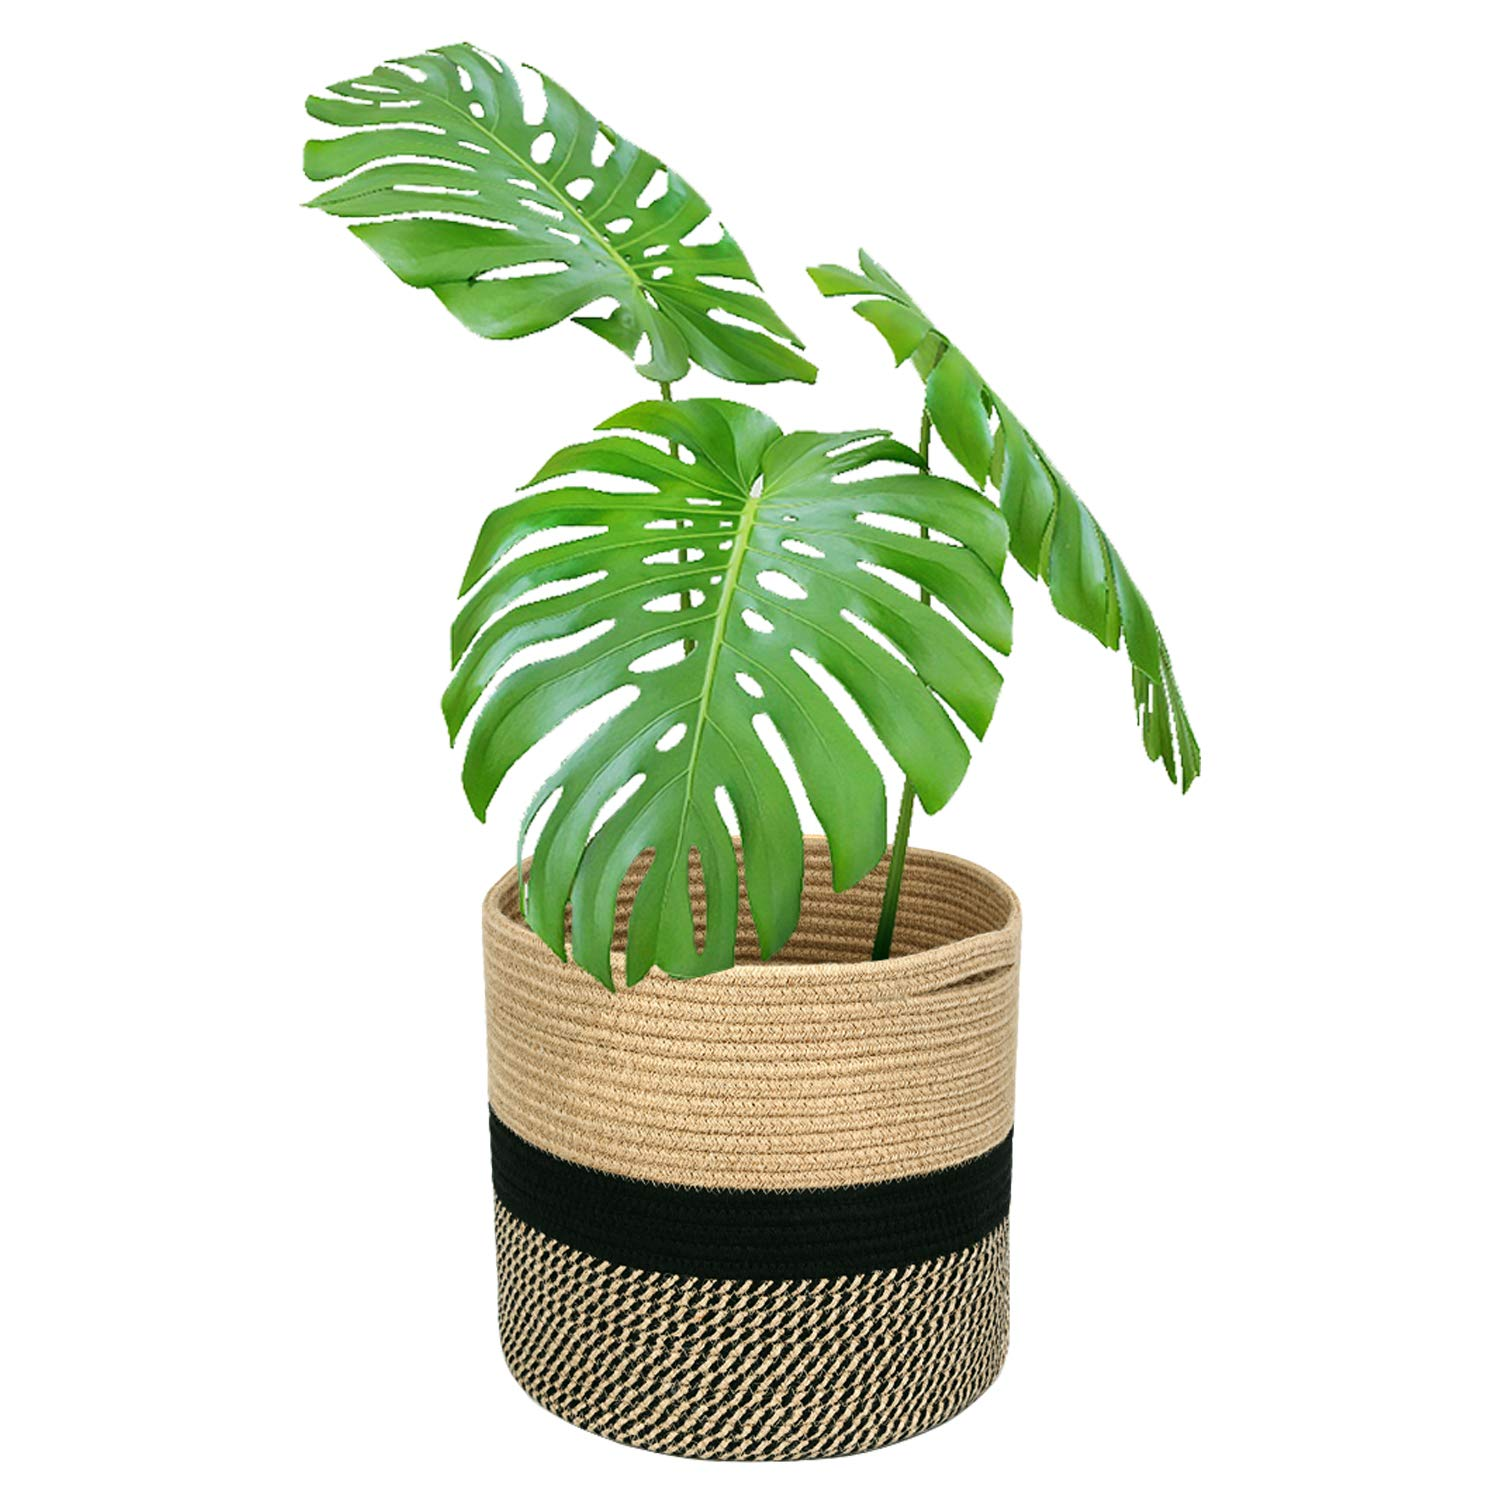 Magicfly Jute Rope Plant Basket, 12 X 12 Inch Cotton Rope Woven Basket for 11 Inch Flower Pot, Floor Indoor Planters, Modern Storage Organizer with Handles for Home D cor, Black and Beige